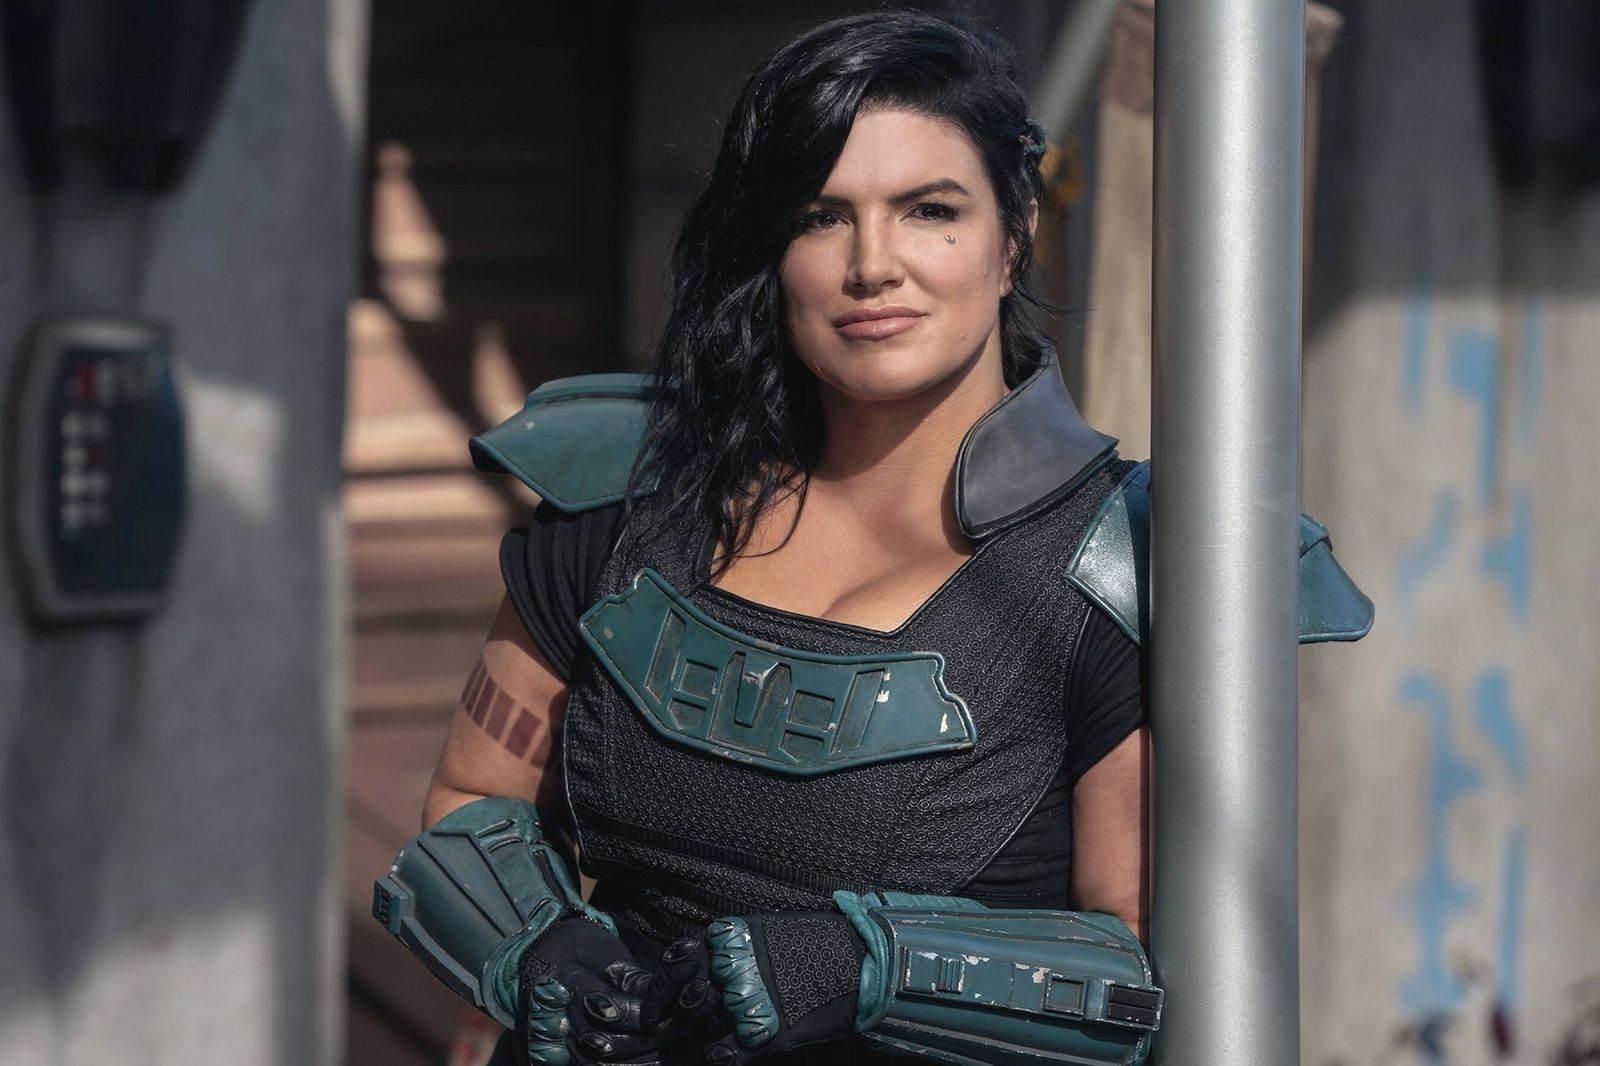 Gina Carano, The Mandalorian (2020) Season 2. Credit: Lucasfilm Limited / The Hollywood Archive Los Angeles CA PUBLICATI